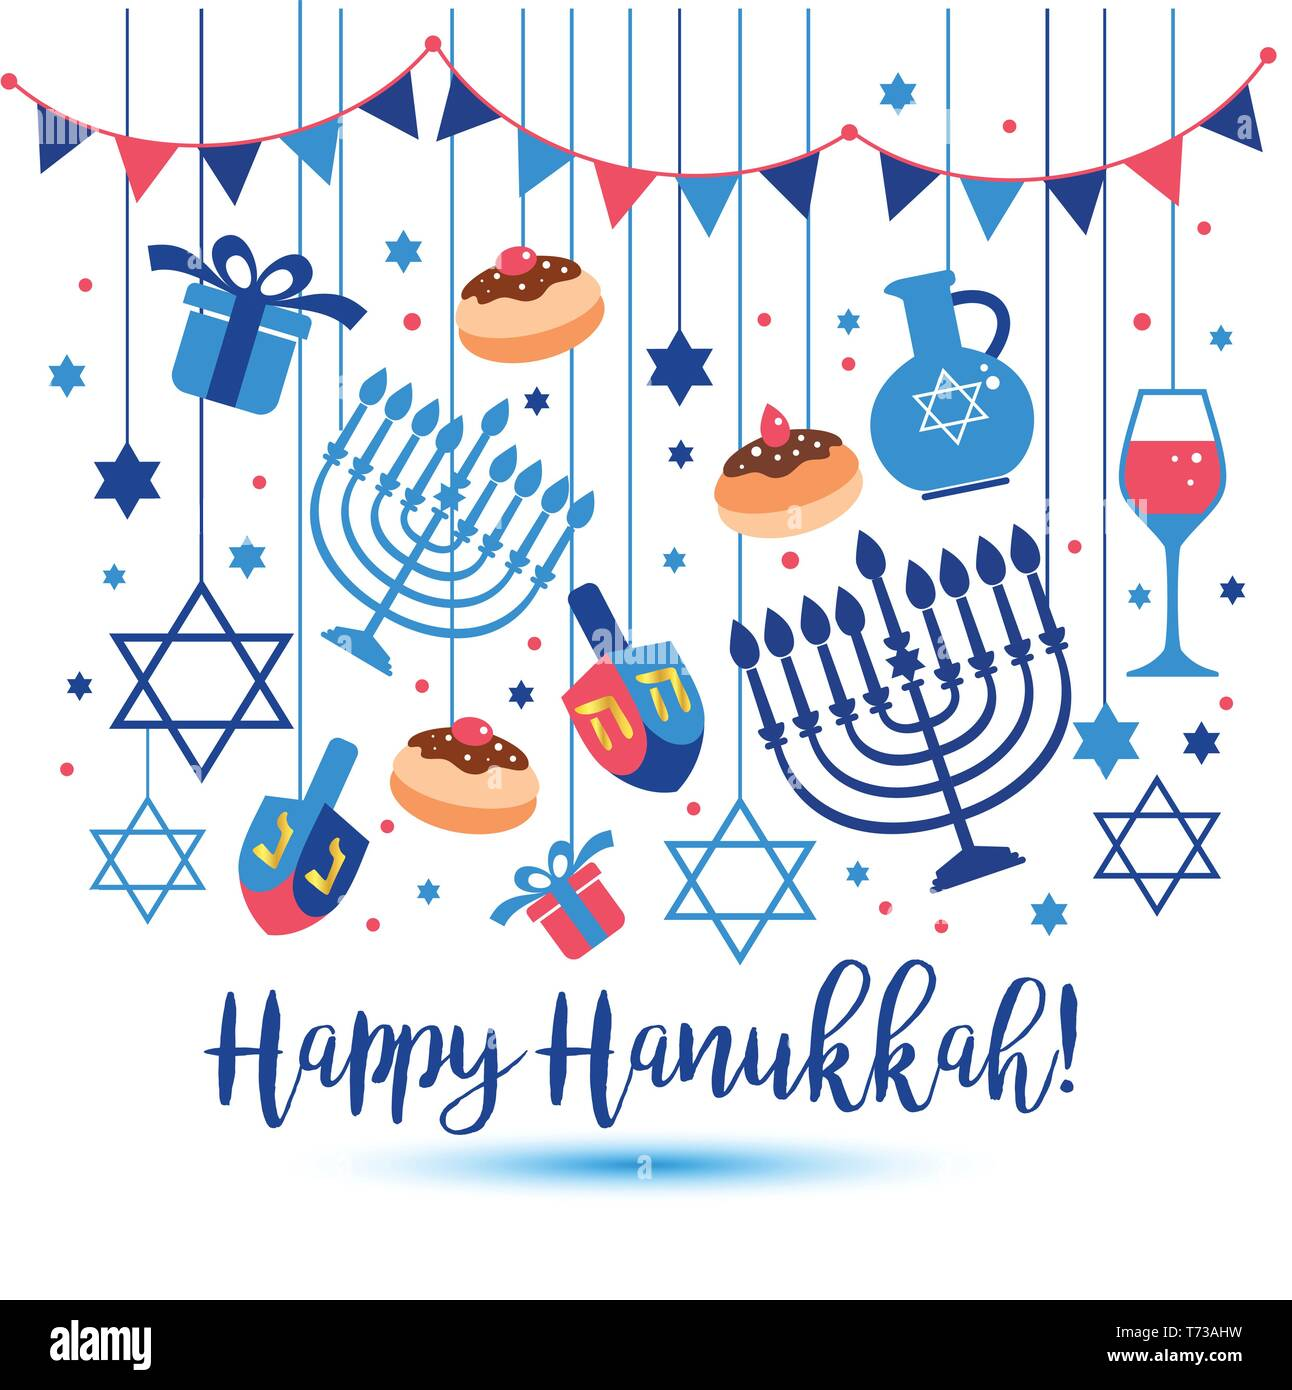 Jewish holiday Hanukkah greeting card traditional Chanukah symbols - wooden dreidels spinning top , Hebrew letters, donuts, menorah candles, oil jar,  - Stock Vector